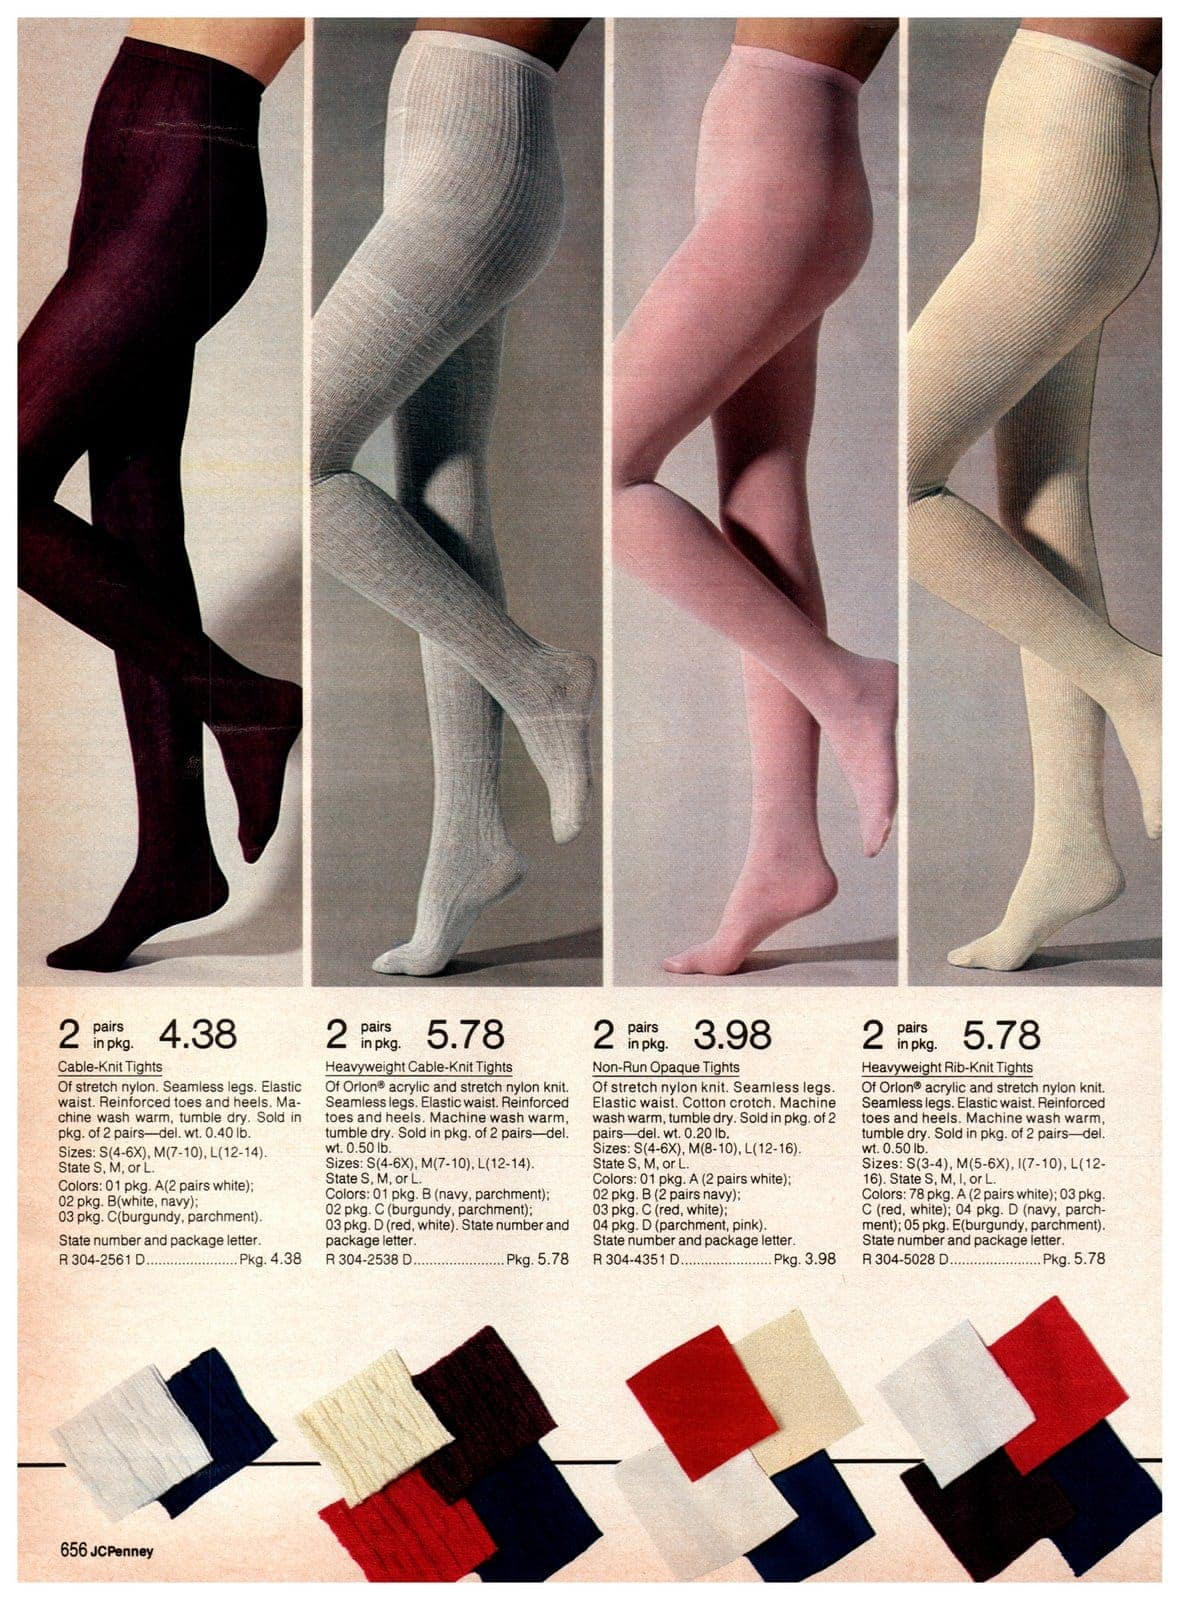 Cable-knit tights, opaque tights and rib-knit tights for girls